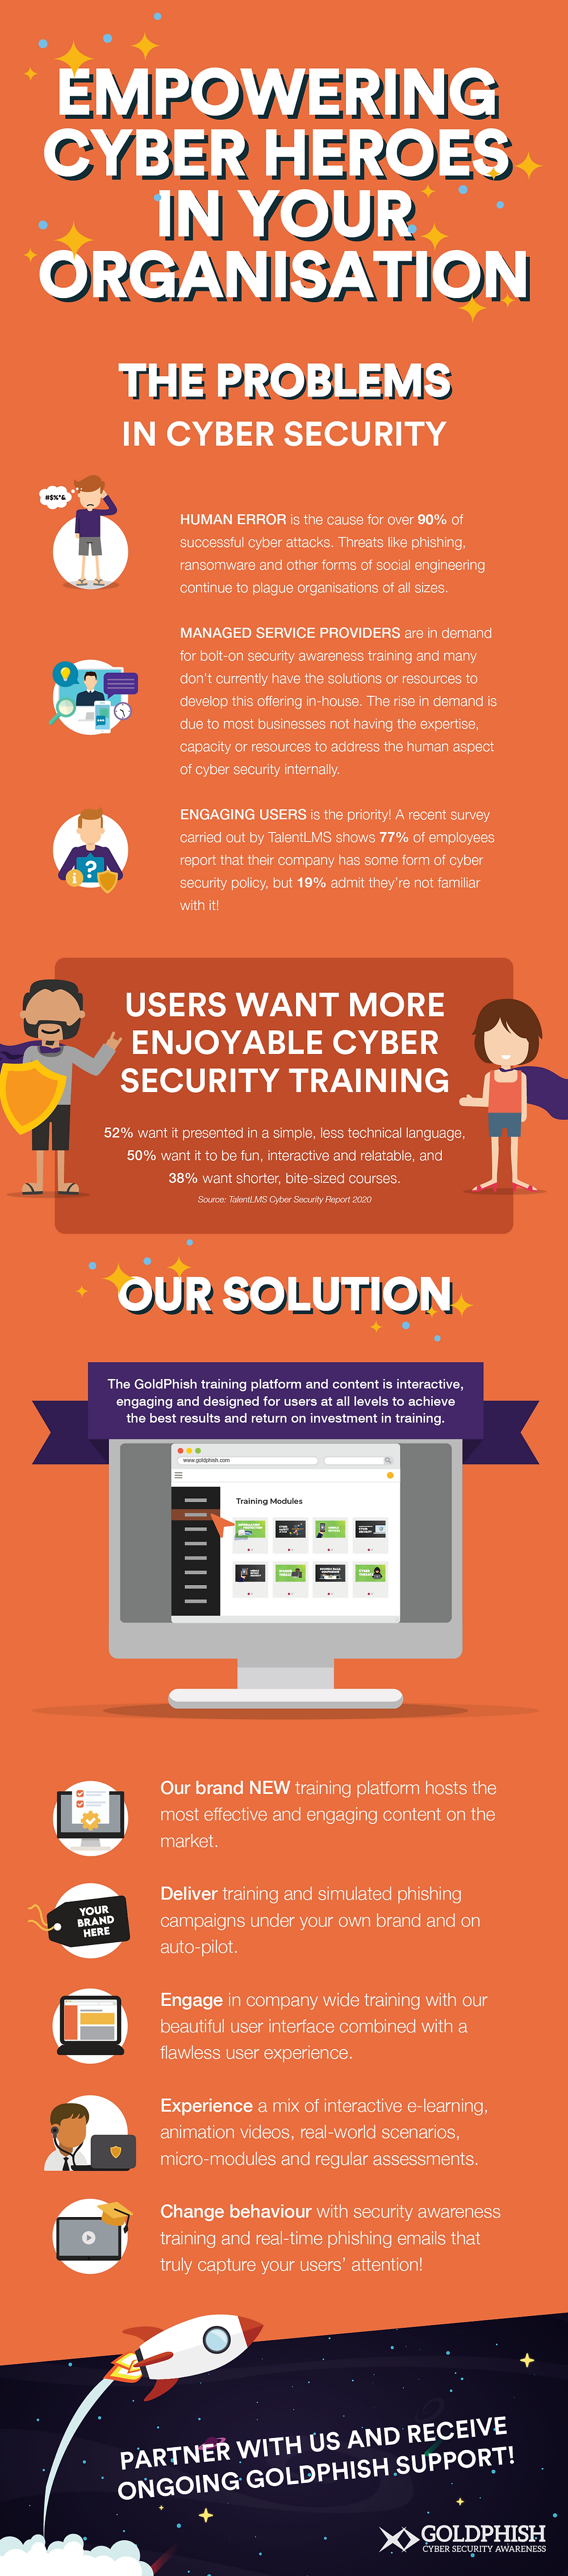 GoldPhish Cyber Security Awareness Training Infographic